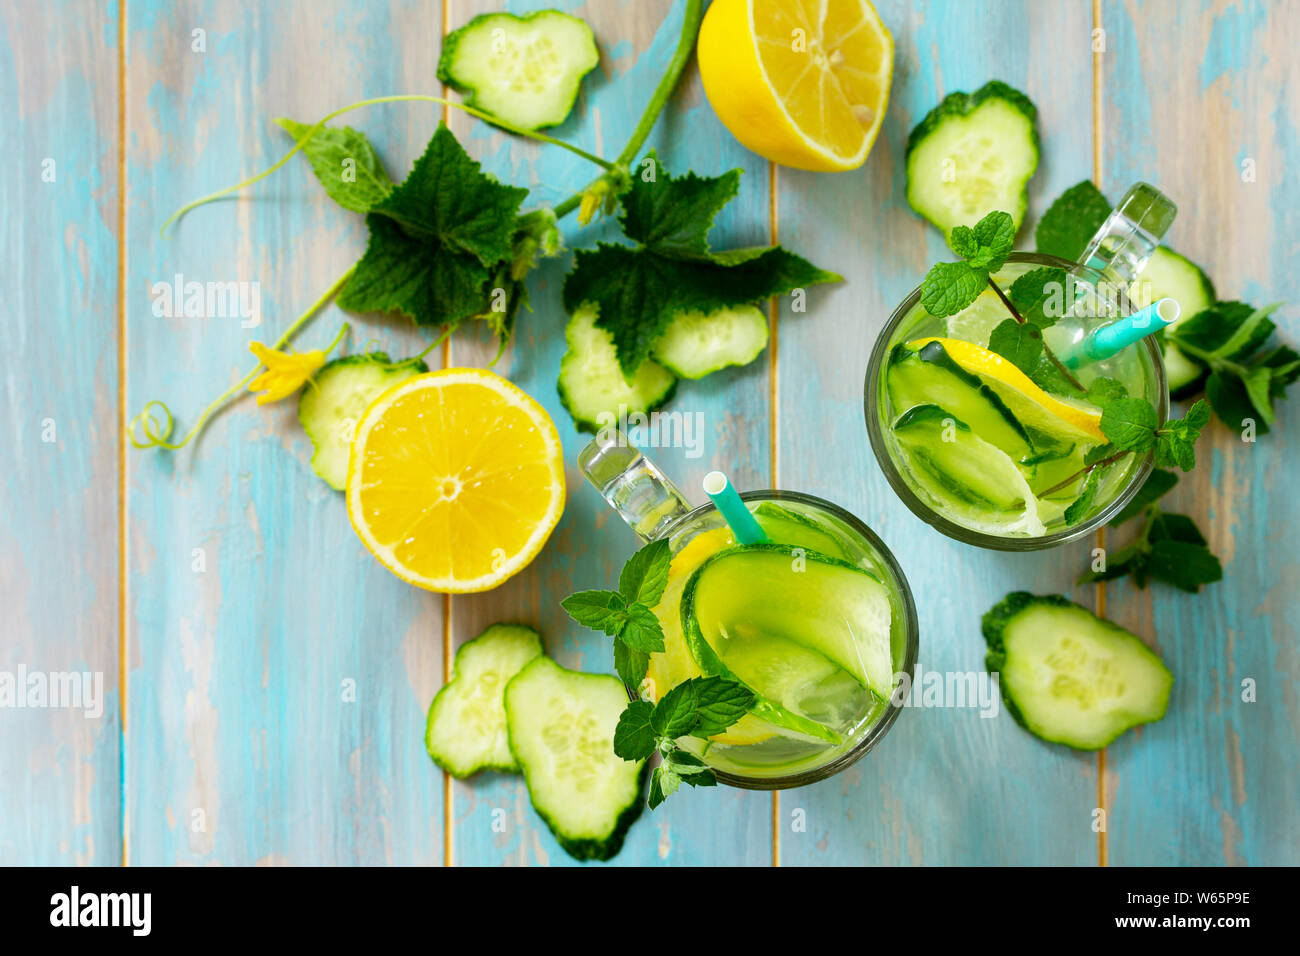 Glasses with fresh organic Cold and refreshing infused detox water with lemon and cucumber on wooden table. Top view flat lay. Stock Photo